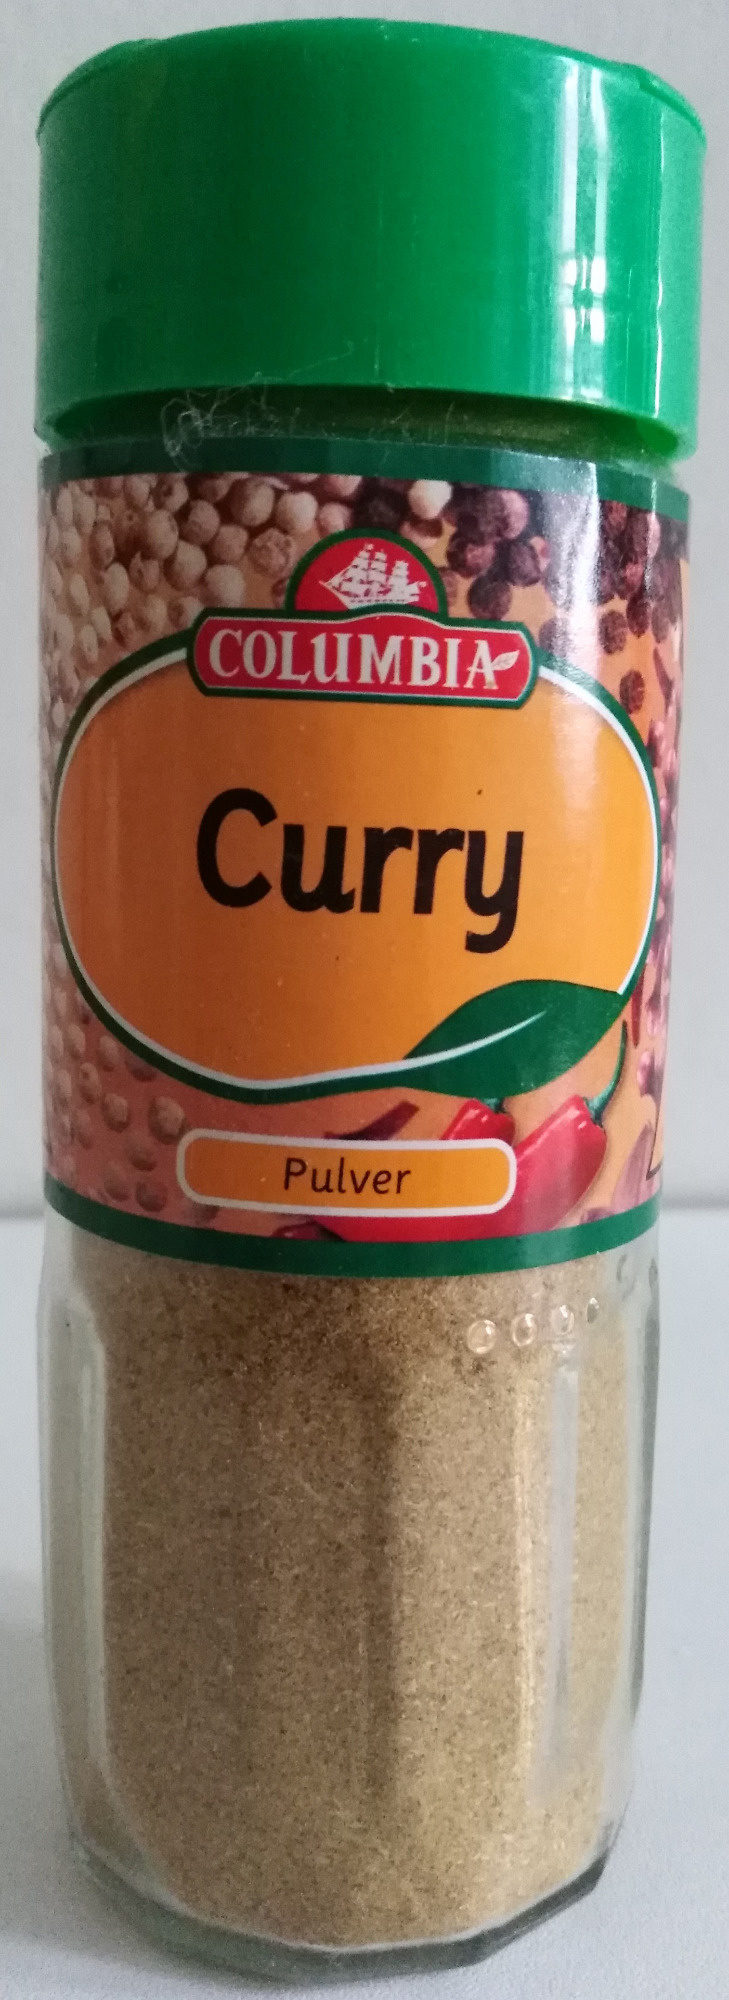 Curry Pulver - Product - de